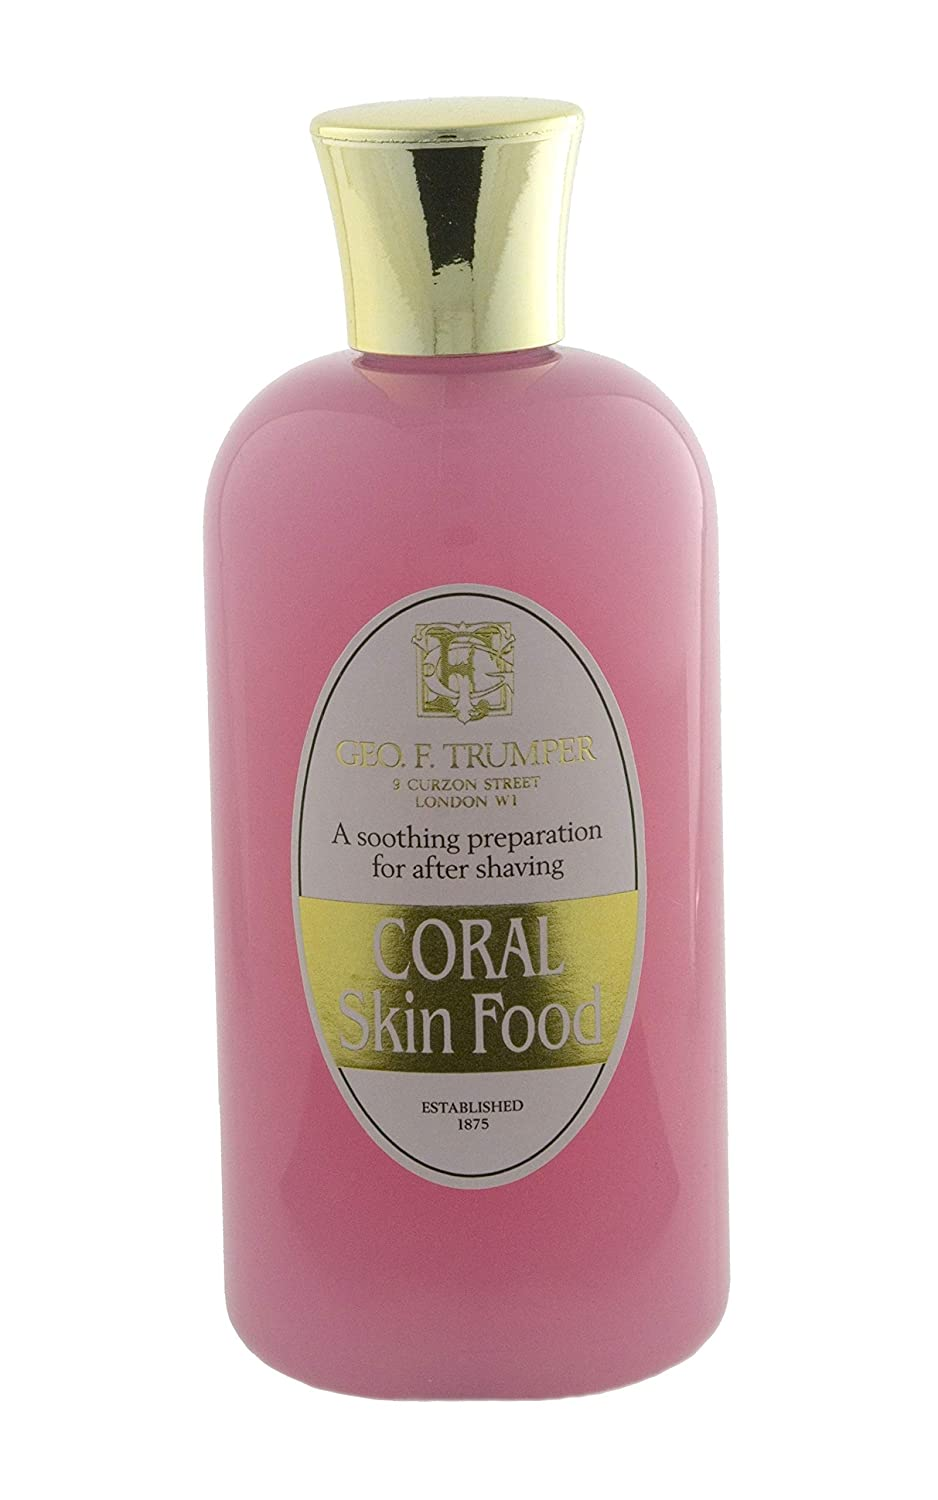 Geo F. Trumper Coral Skin Food, 200ml